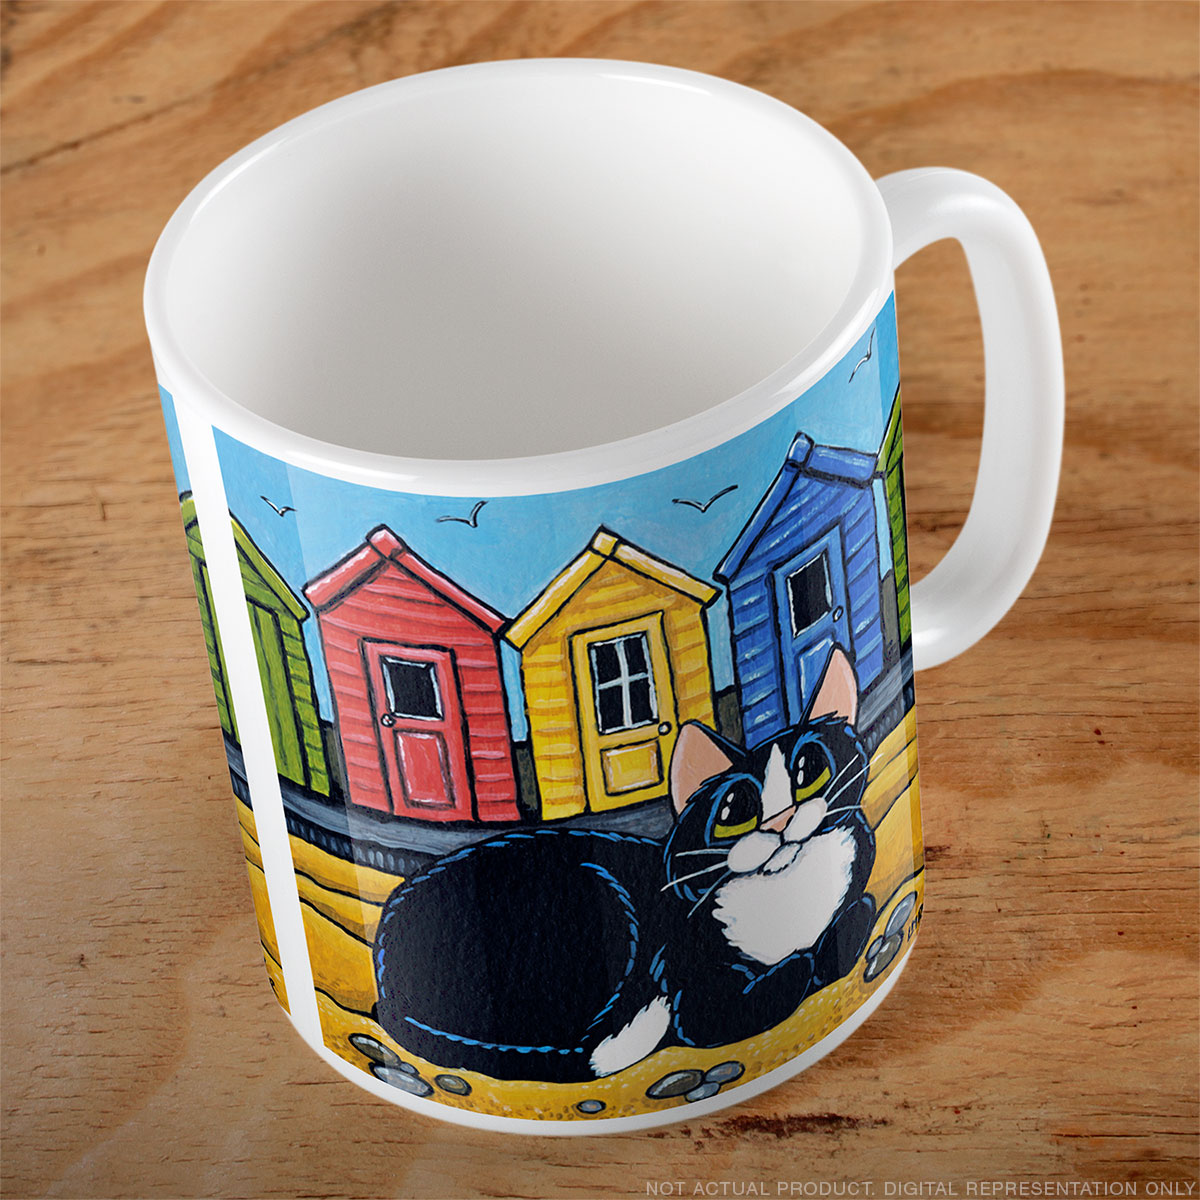 Tuxedo Cat and Beach Huts Mug